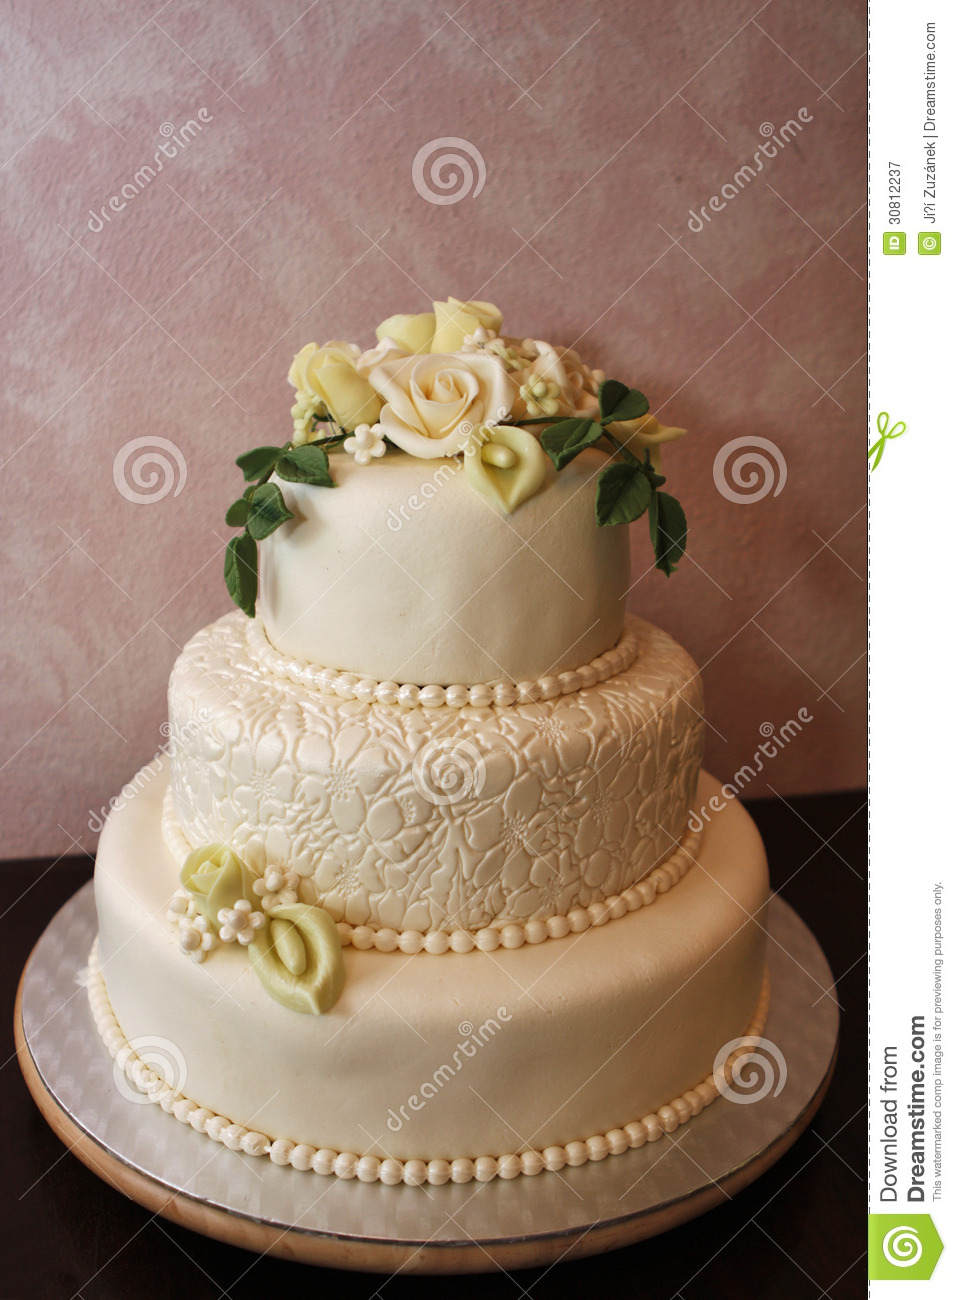 Wedding Cake Royalty Free Stock Photography Image 30812237